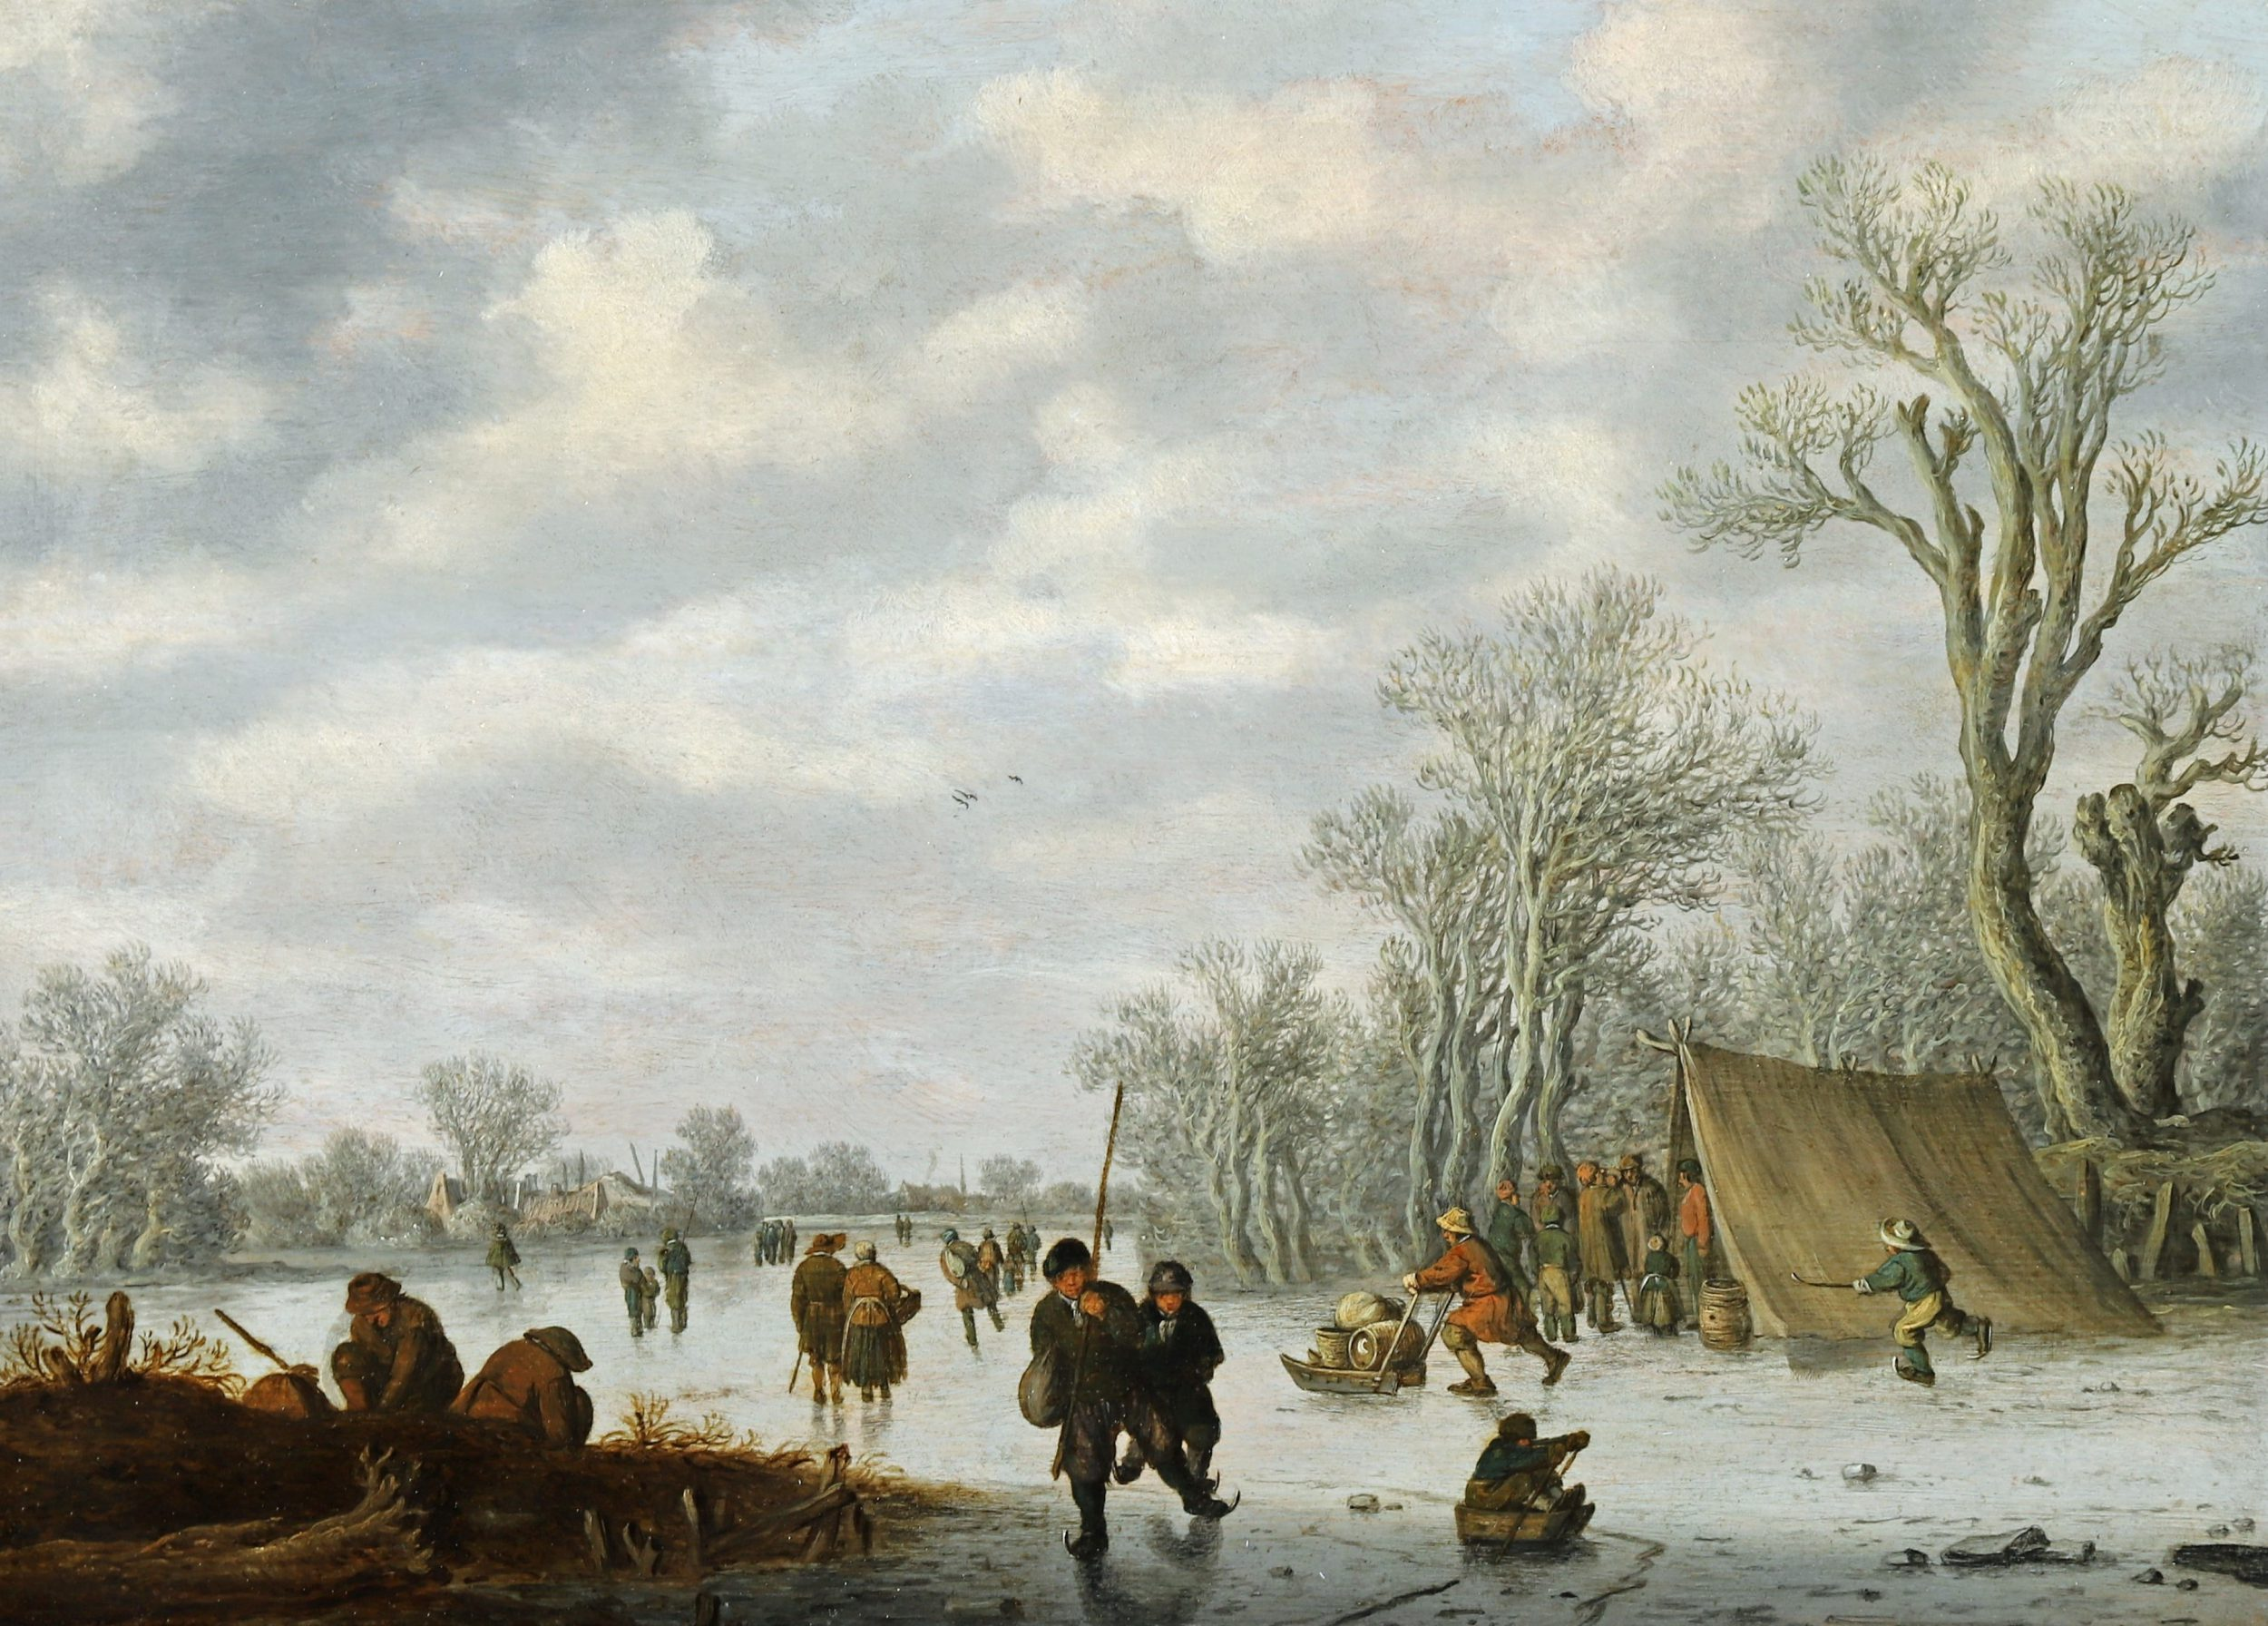 Winter Scene with Skaters on the Ice